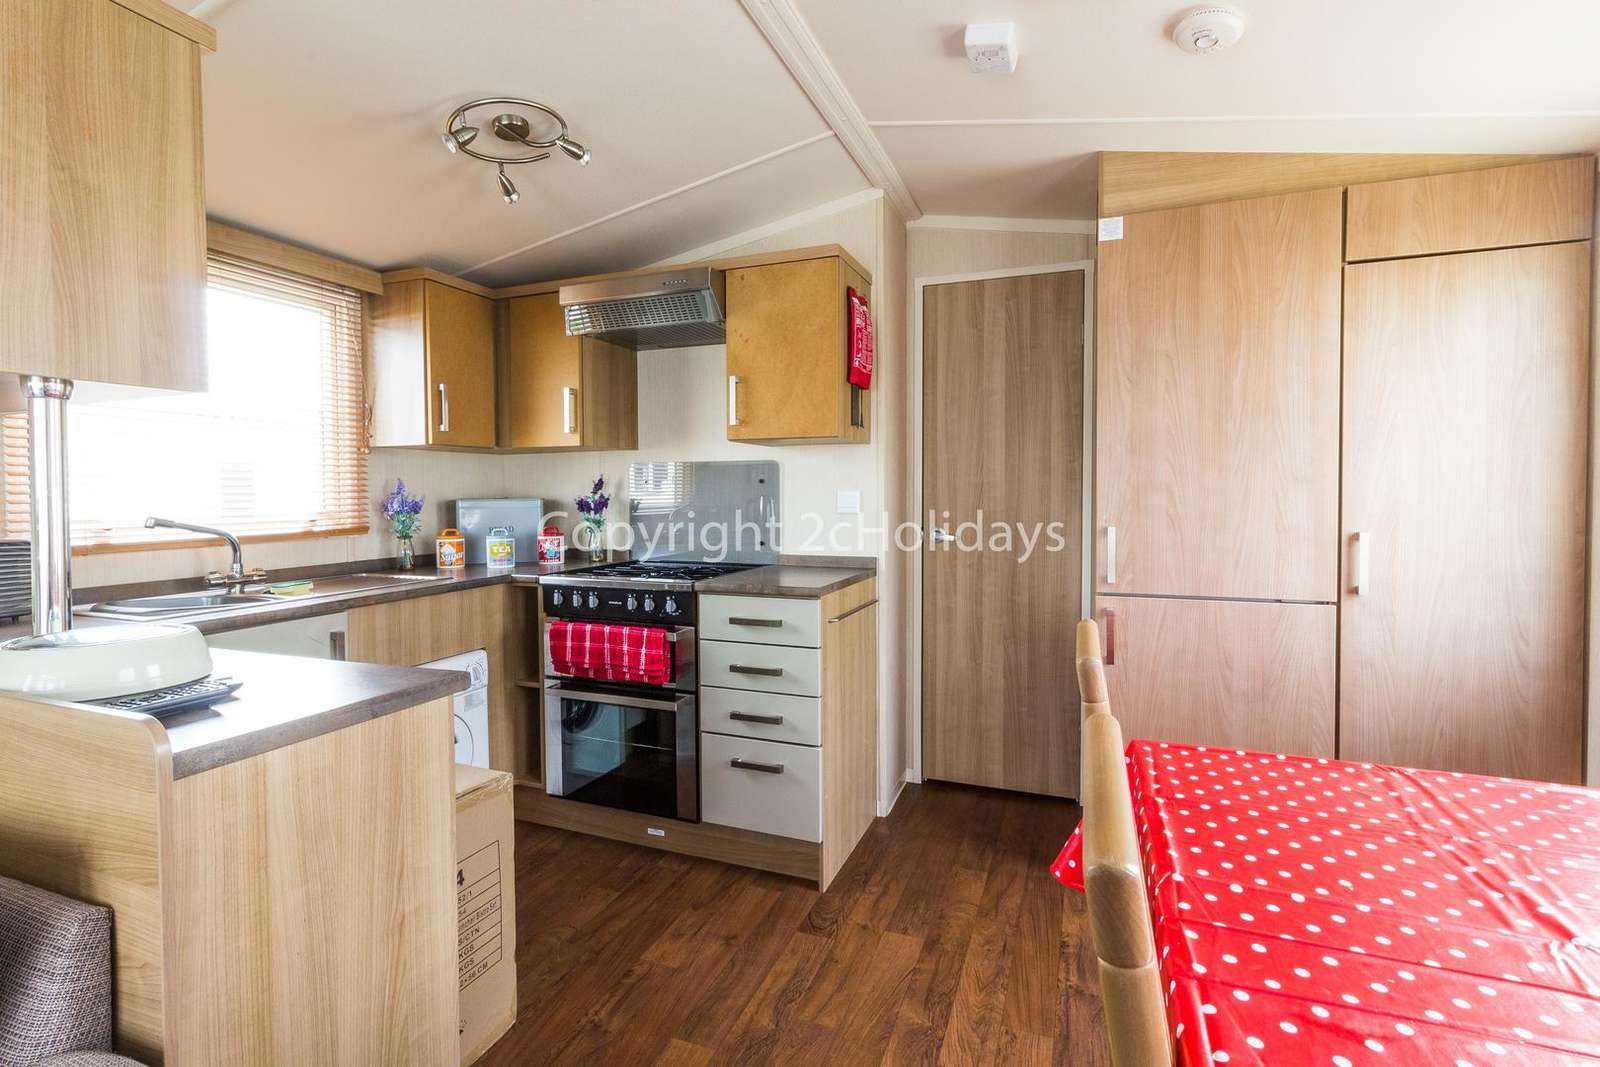 A fully equipped kitchen with a washing machine! P perfect for self-catering holidays.